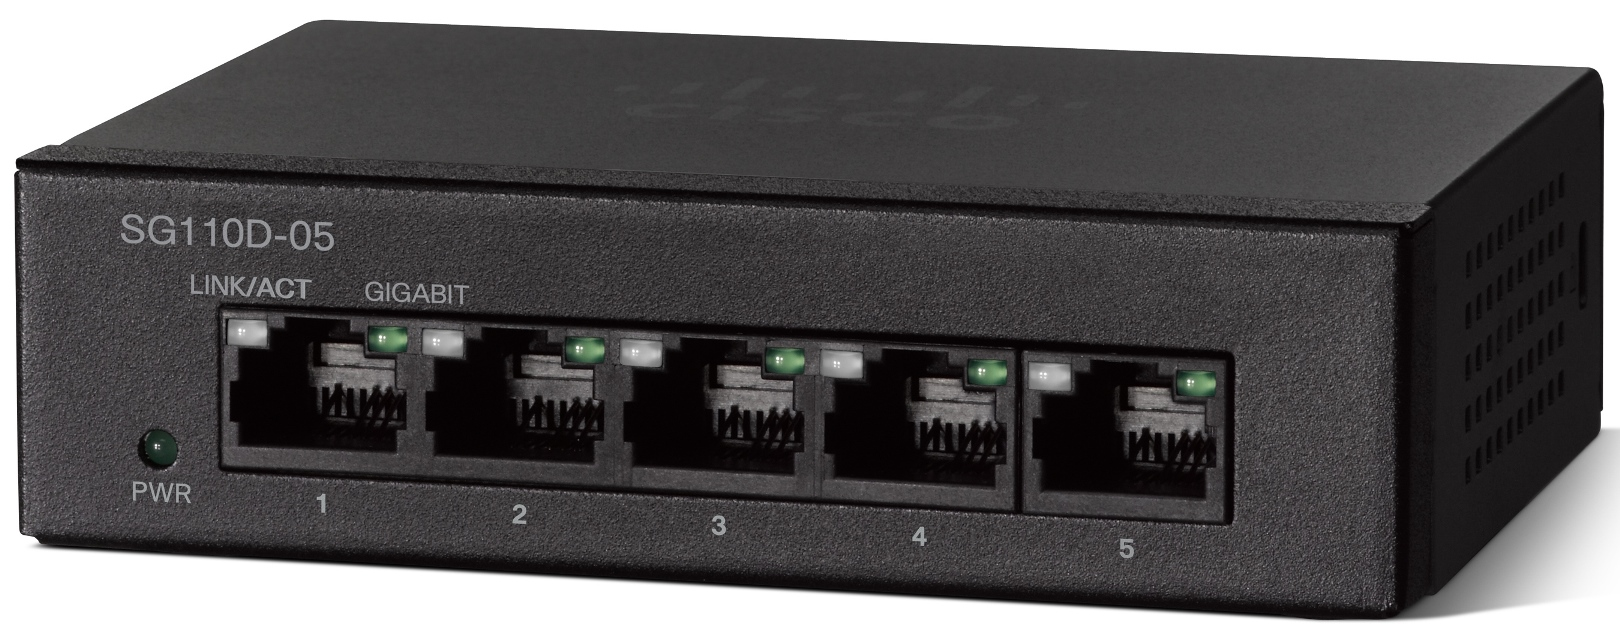 Cisco SG110D-05 5-Port Gigabit Desktop Switch